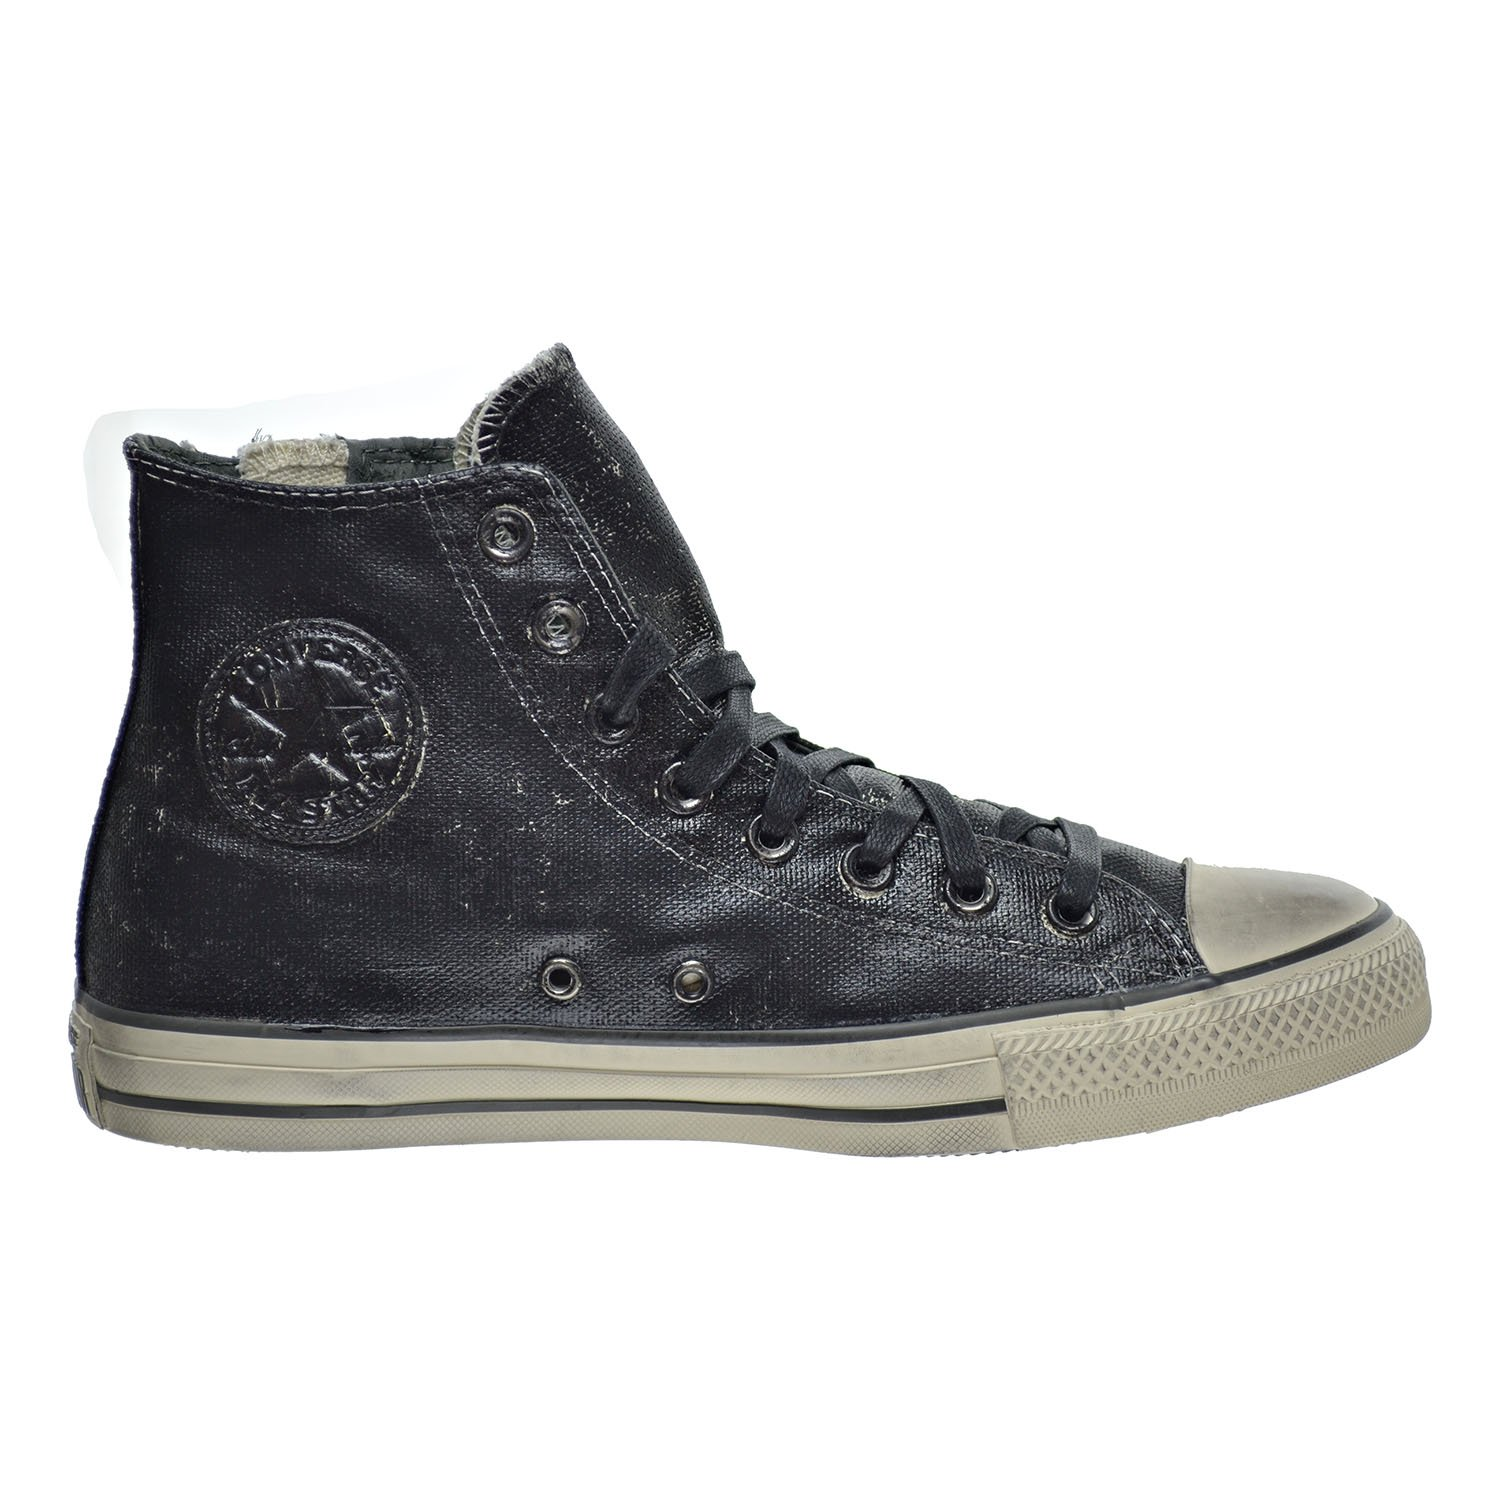 7b563ea6c135 Converse by John Varvatos Distressed Painted Side Zip Hi Top Black (6.5  D(M) US Men)  Amazon.ca  Shoes   Handbags